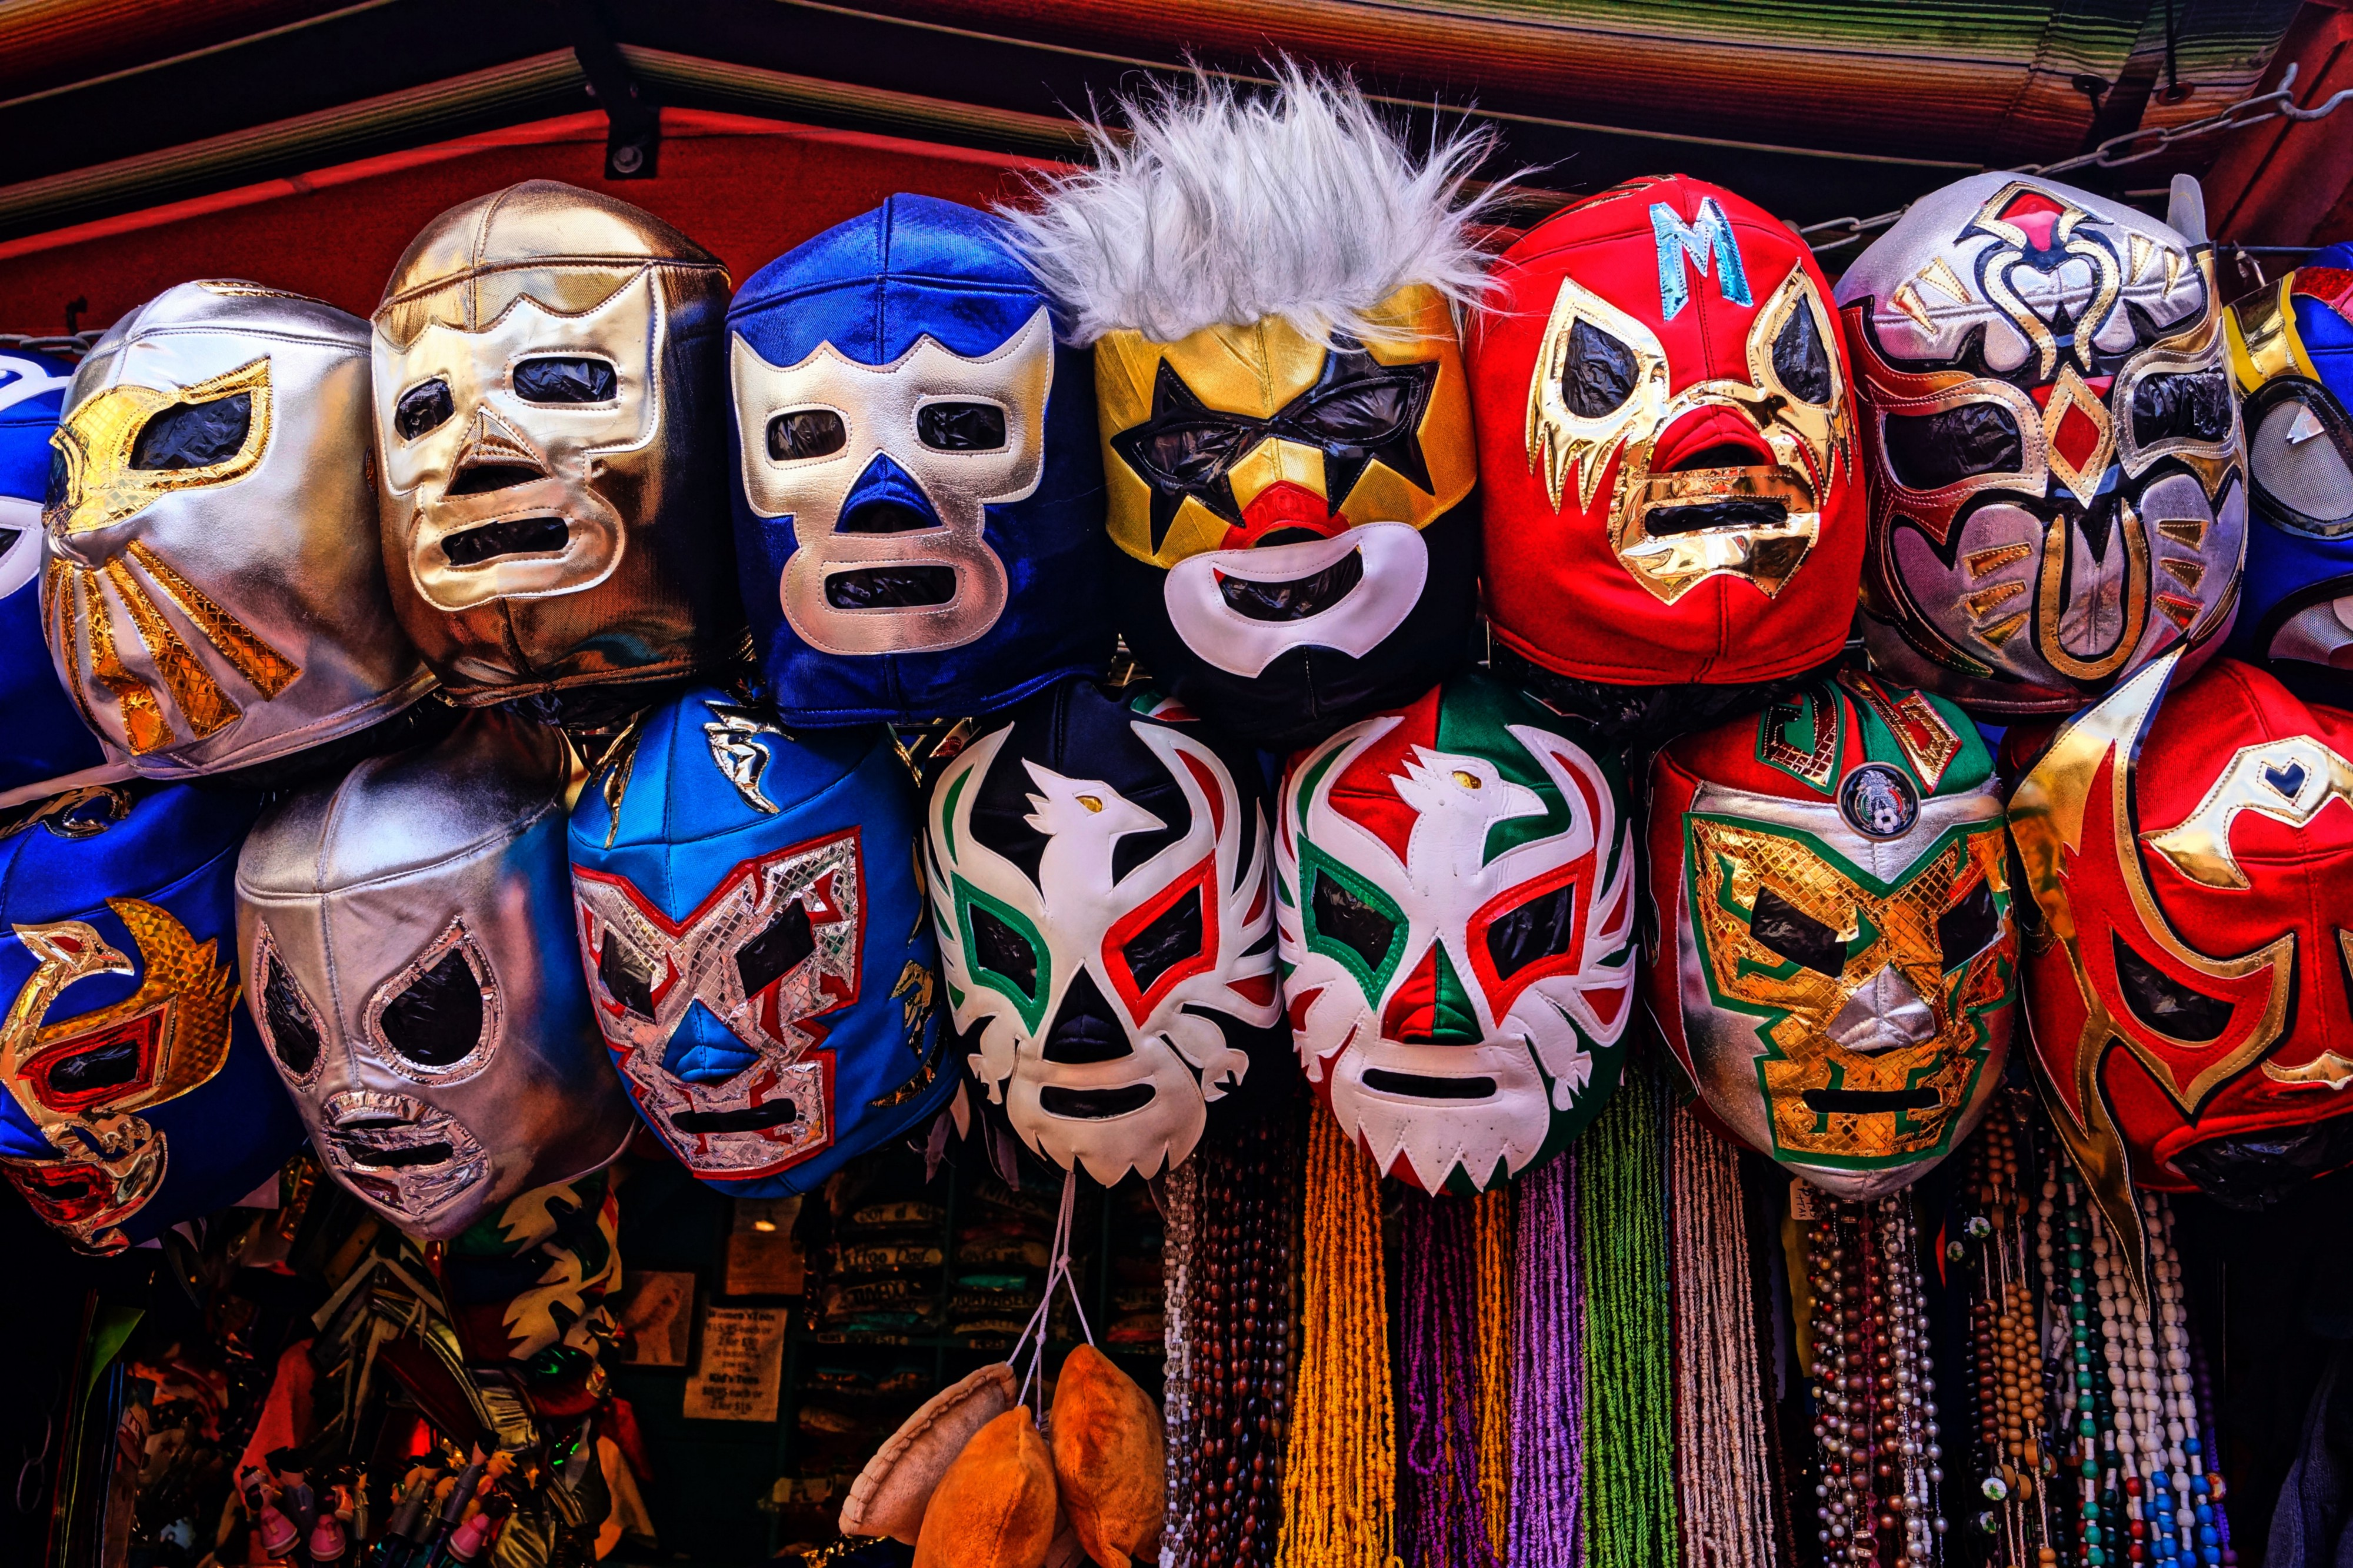 A booth in a mexican flea market that offers numerous different wrestling masks.